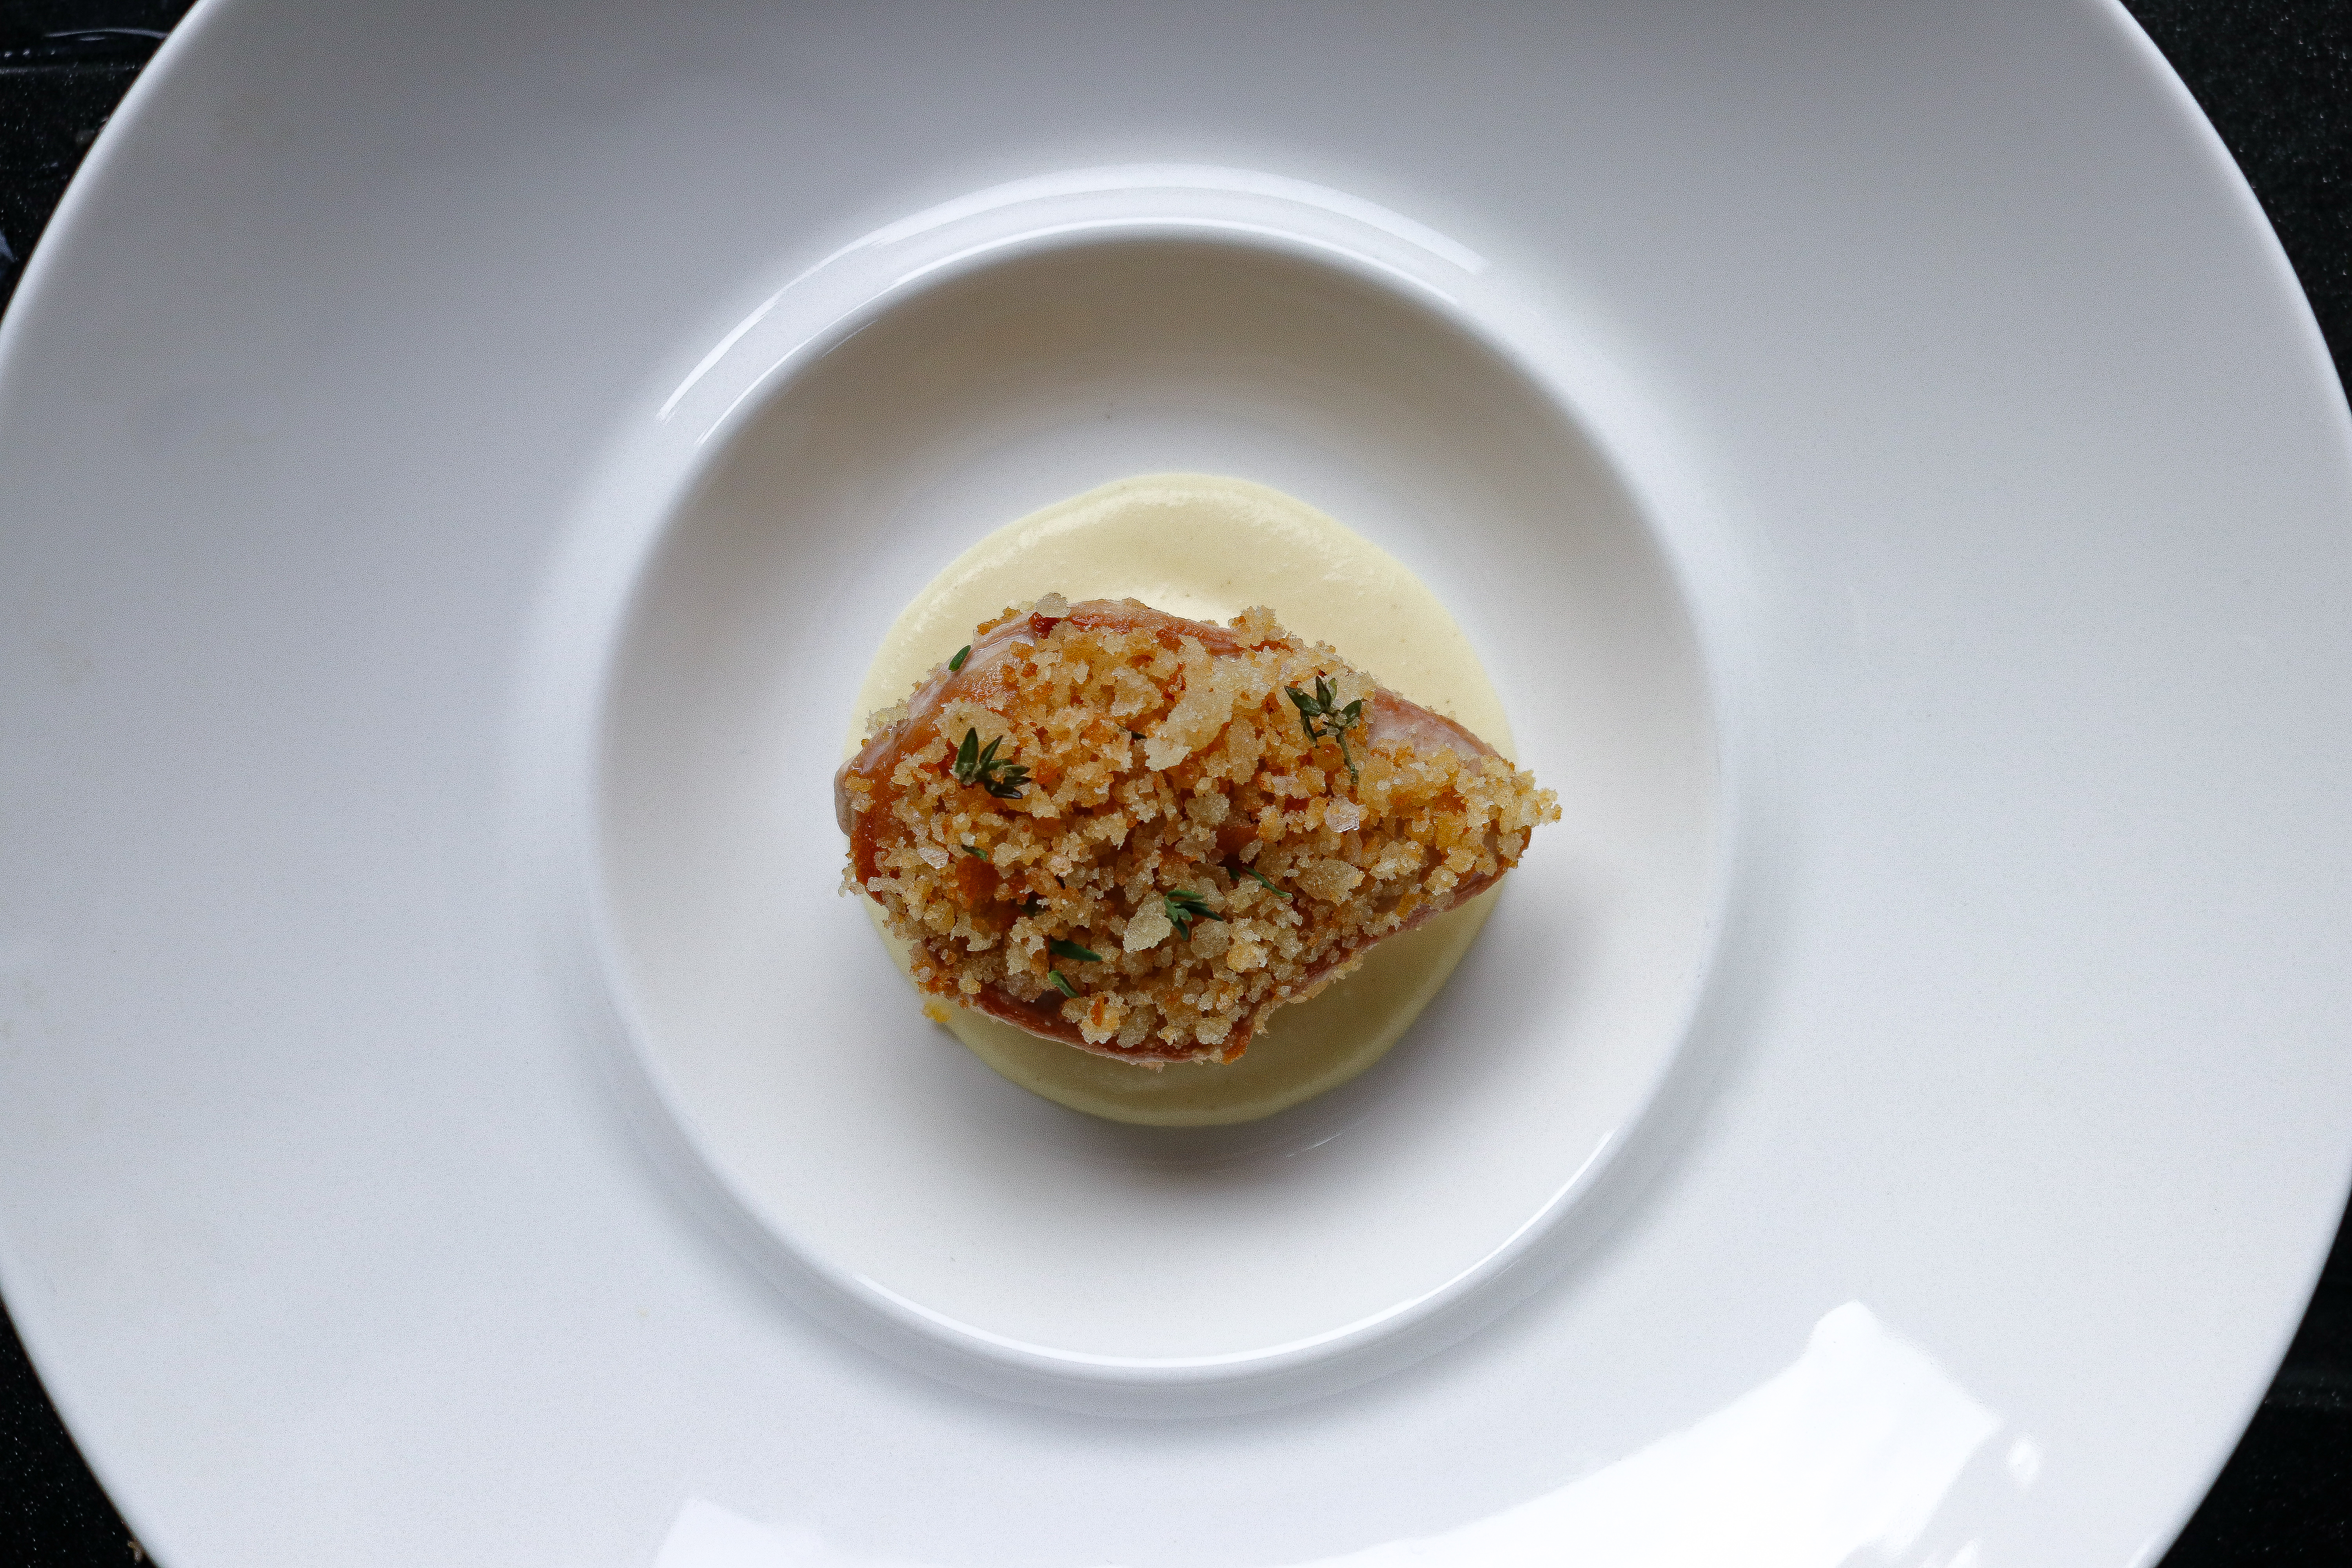 Partridge with Parsnip Puree, Leek and an Iberico and Thyme Crumb